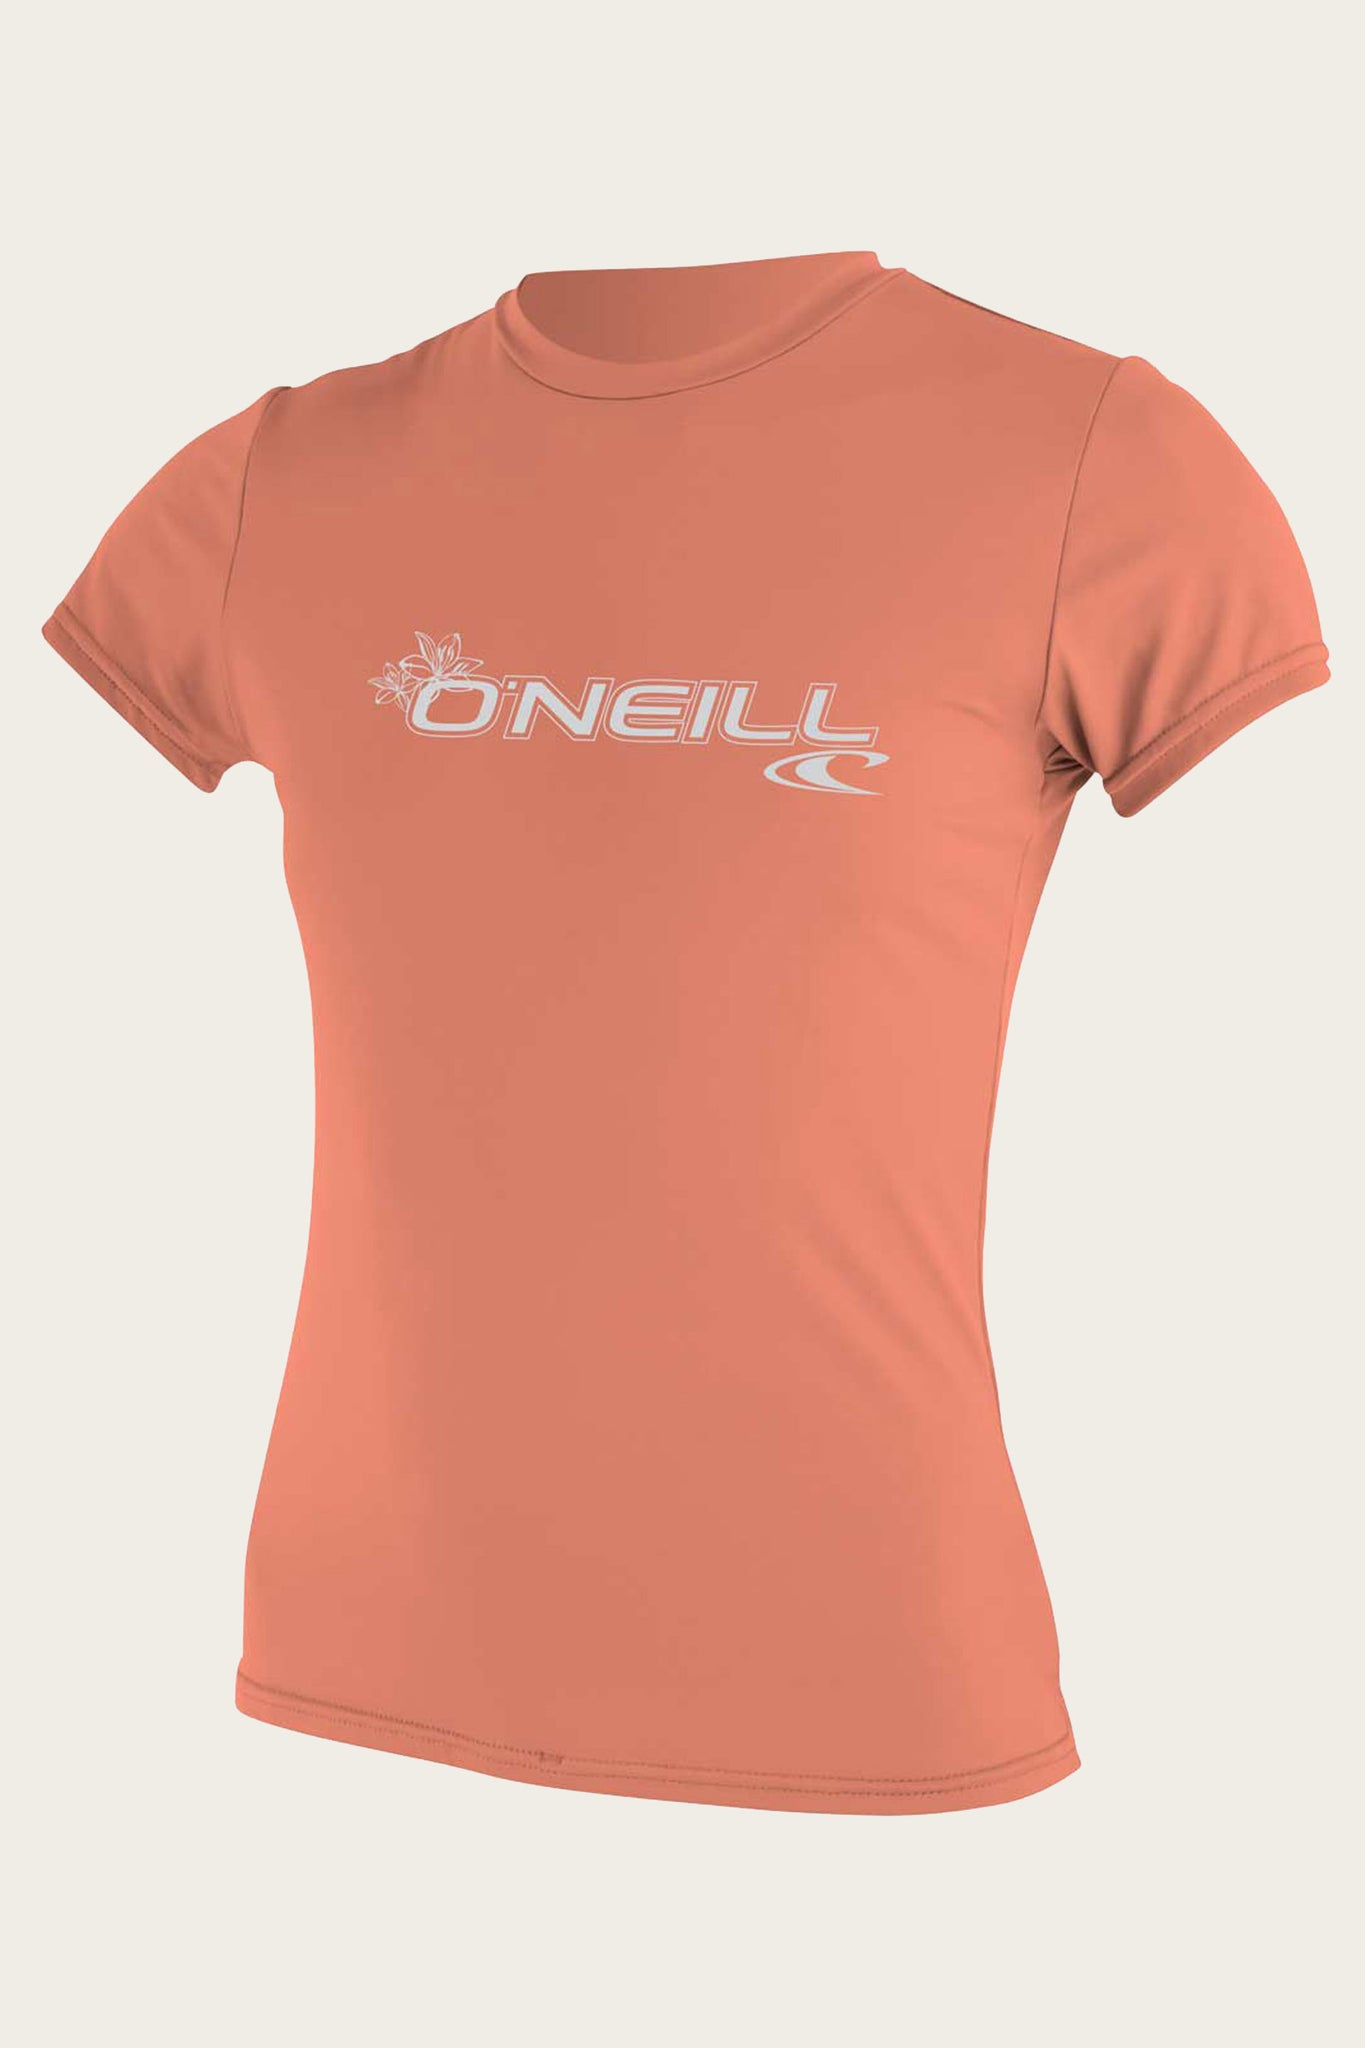 Women's Basic S/S Sun Shirt - Past Season - Lt Grpfrt | O'Neill